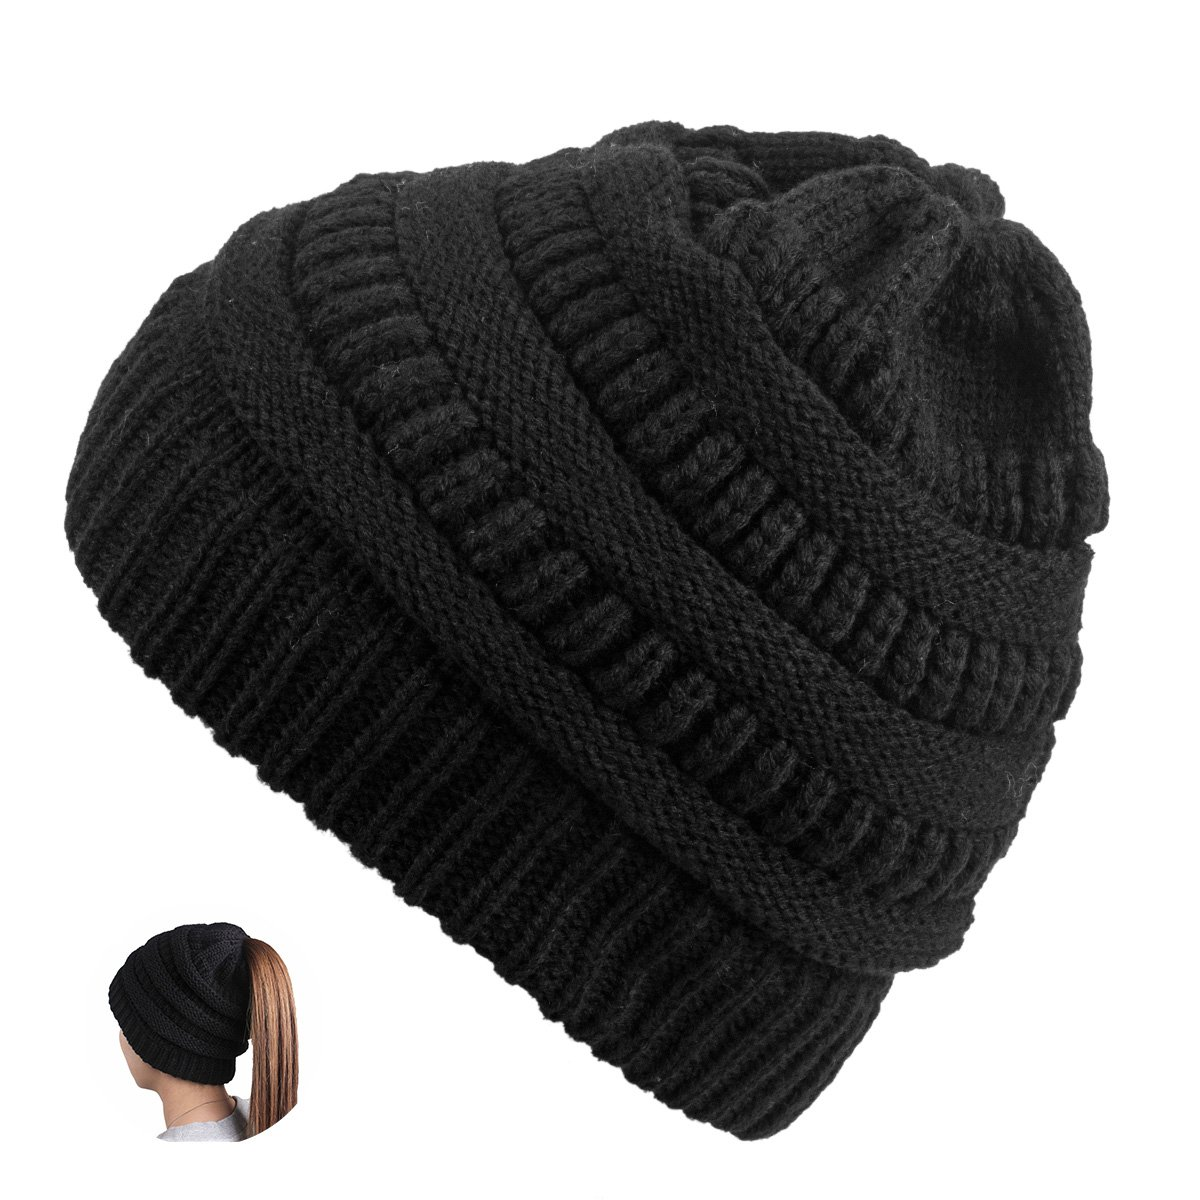 Black TONLION Women Girl Stretch Knit Hat Messy Bun Ponytail Beanie Holey Warm Hats Winter